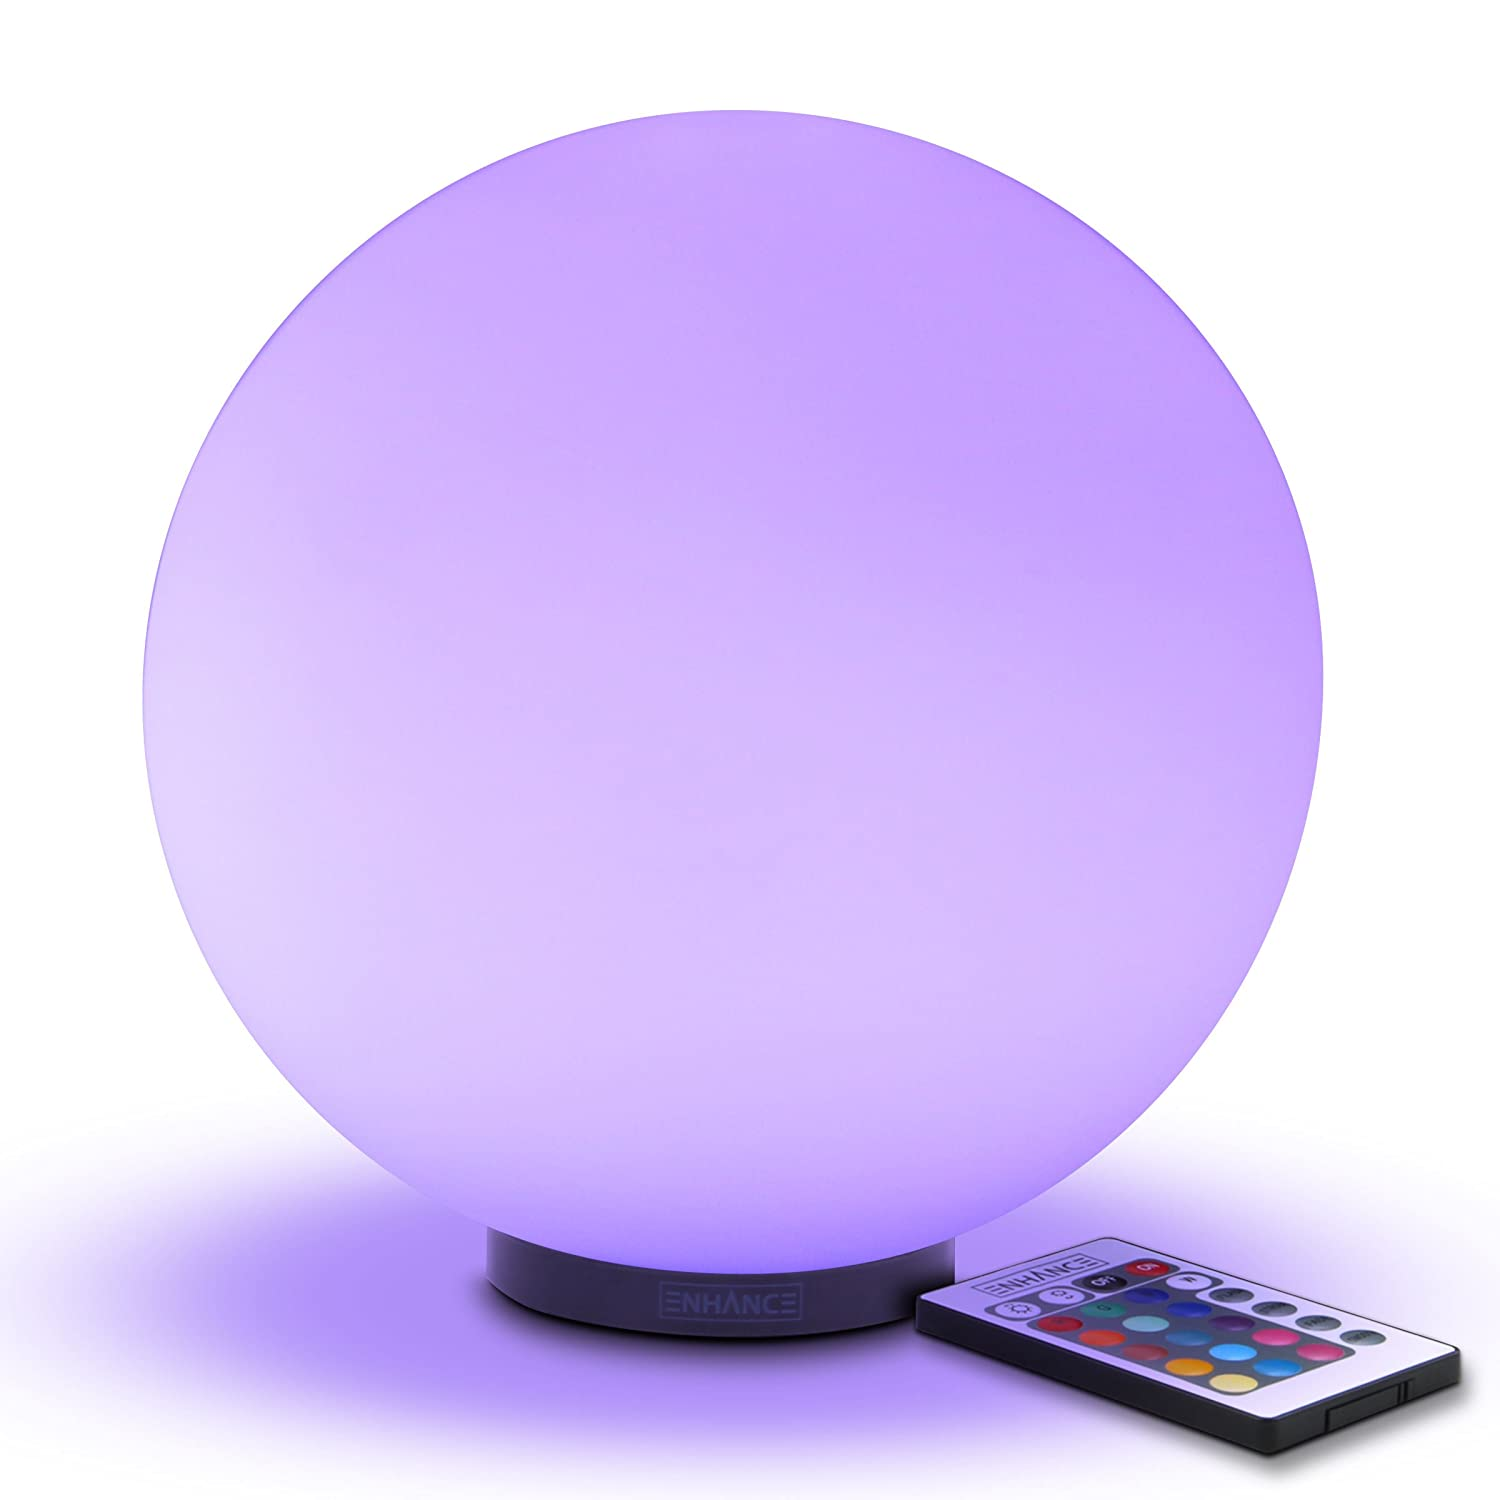 Great for Children /& Babies ENMDLM0100BKUS ENHANCE Kids LED Globe Night Light Ambient Color Changing Glass Mood Lamp 5.9 inch Wireless Remote Control 4 Lighting Modes /& Battery or AC Adapter Power